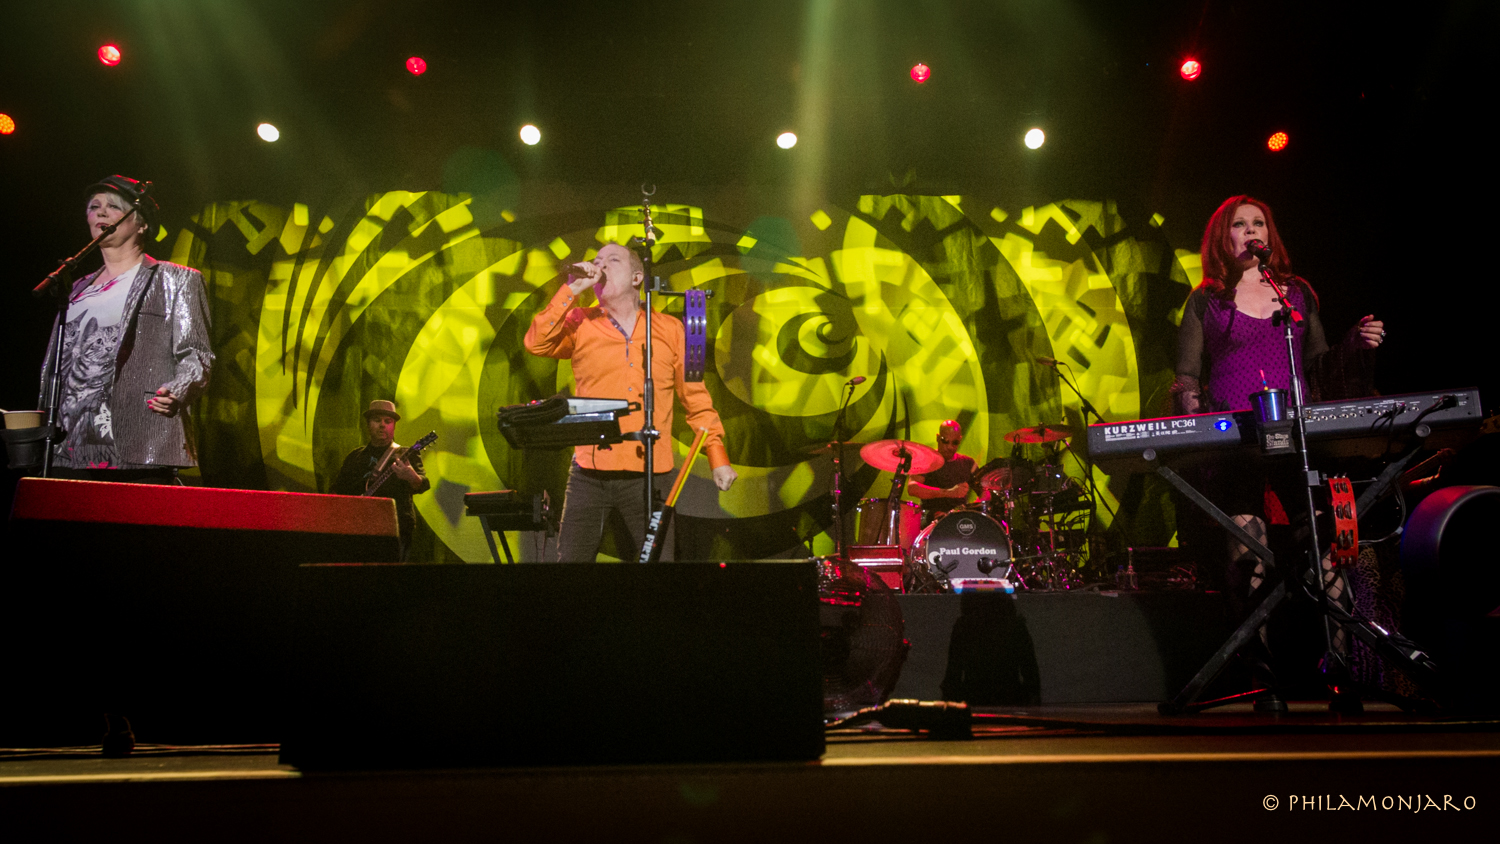 REVIEW / PHOTOS / VIDEO | The B-52s @ Genesse Theatre 11/11/16